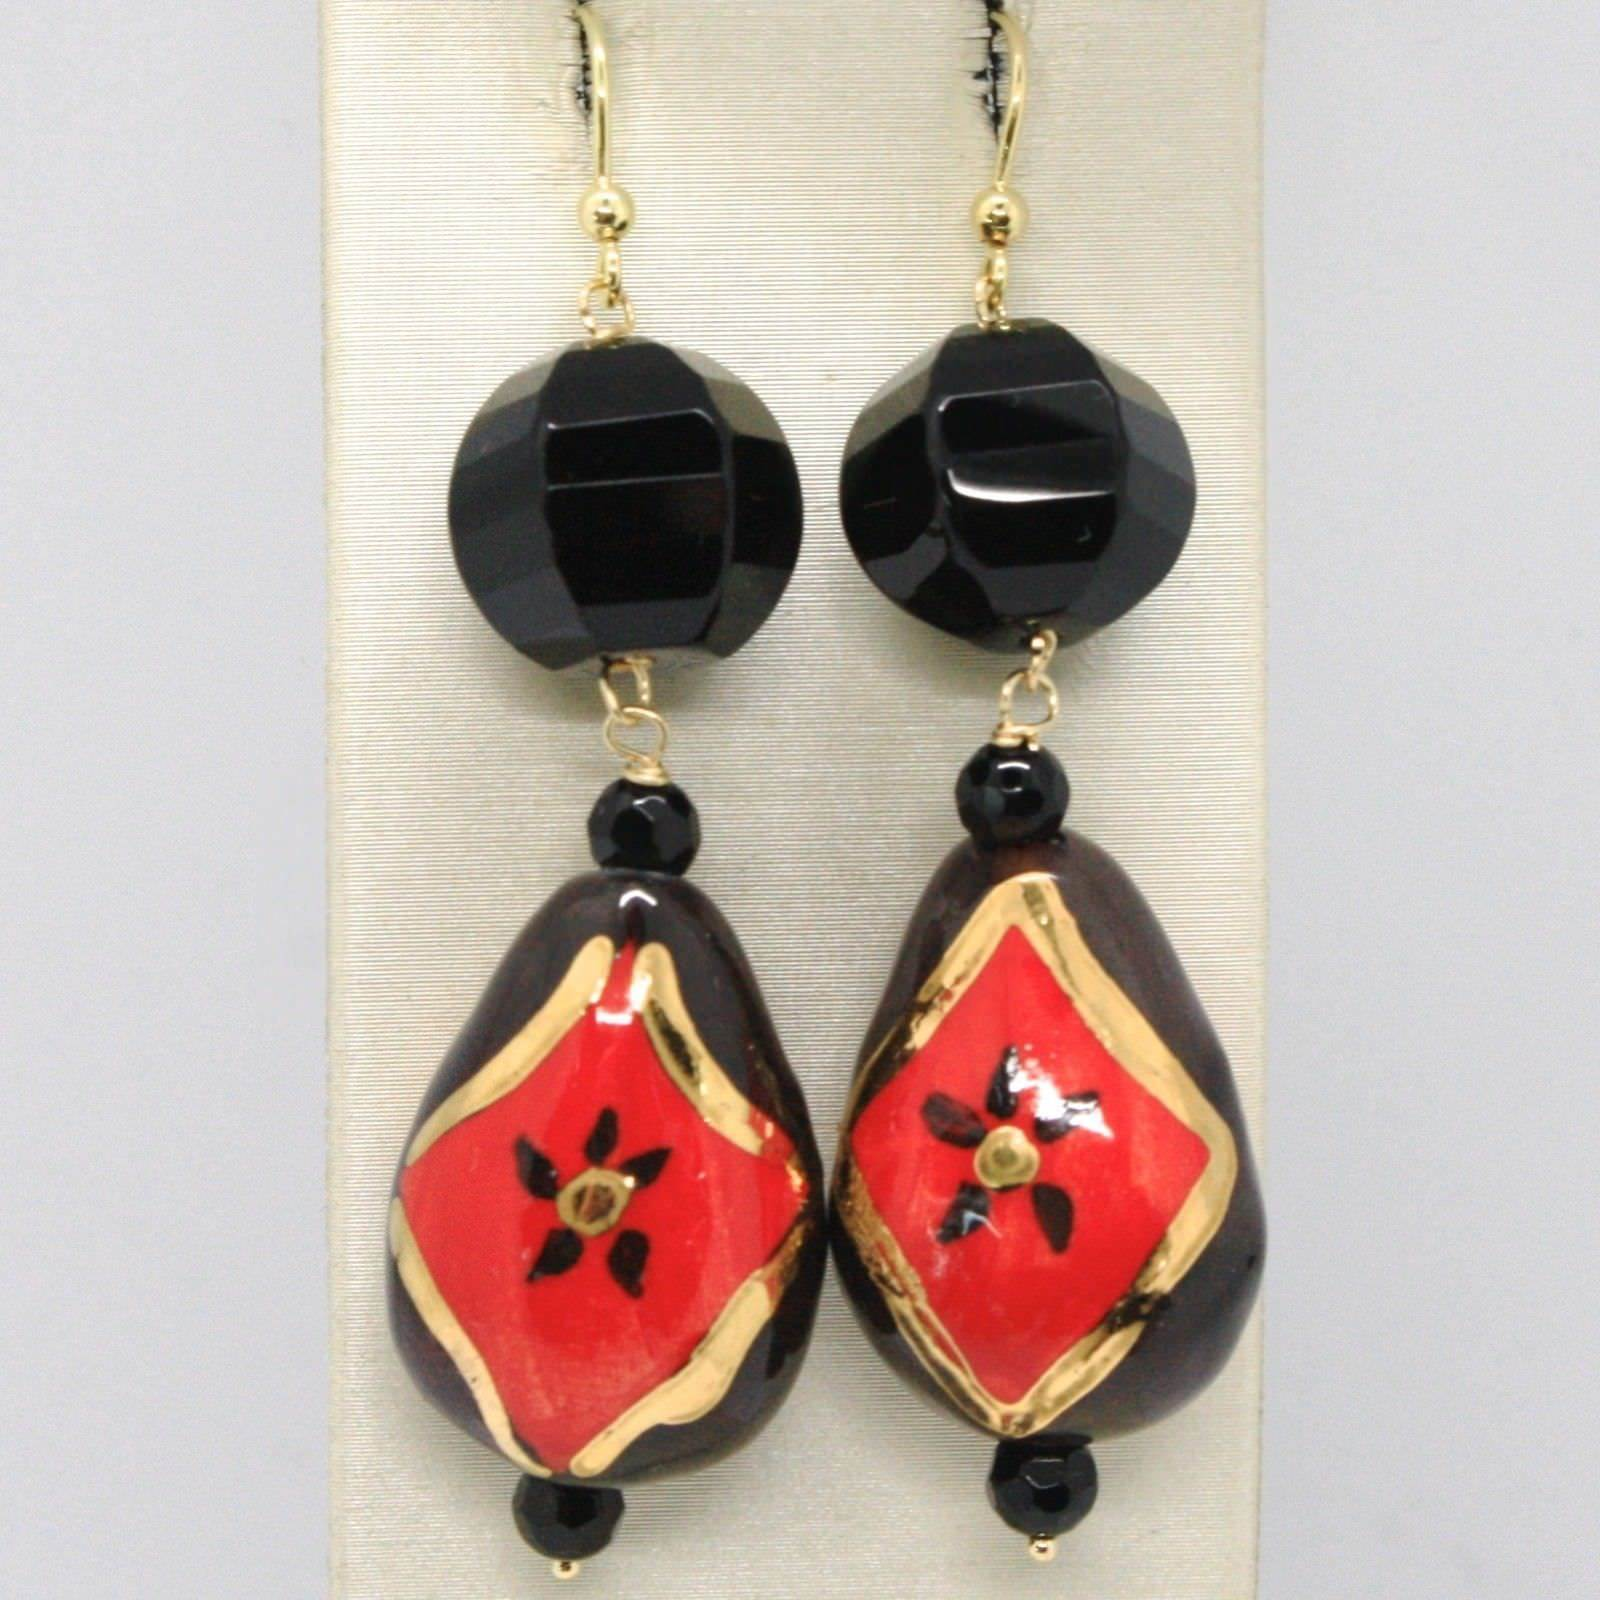 YELLOW GOLD EARRINGS 18K WITH ONYX AND CERAMICS HAND-PAINTED MADE IN ITALY